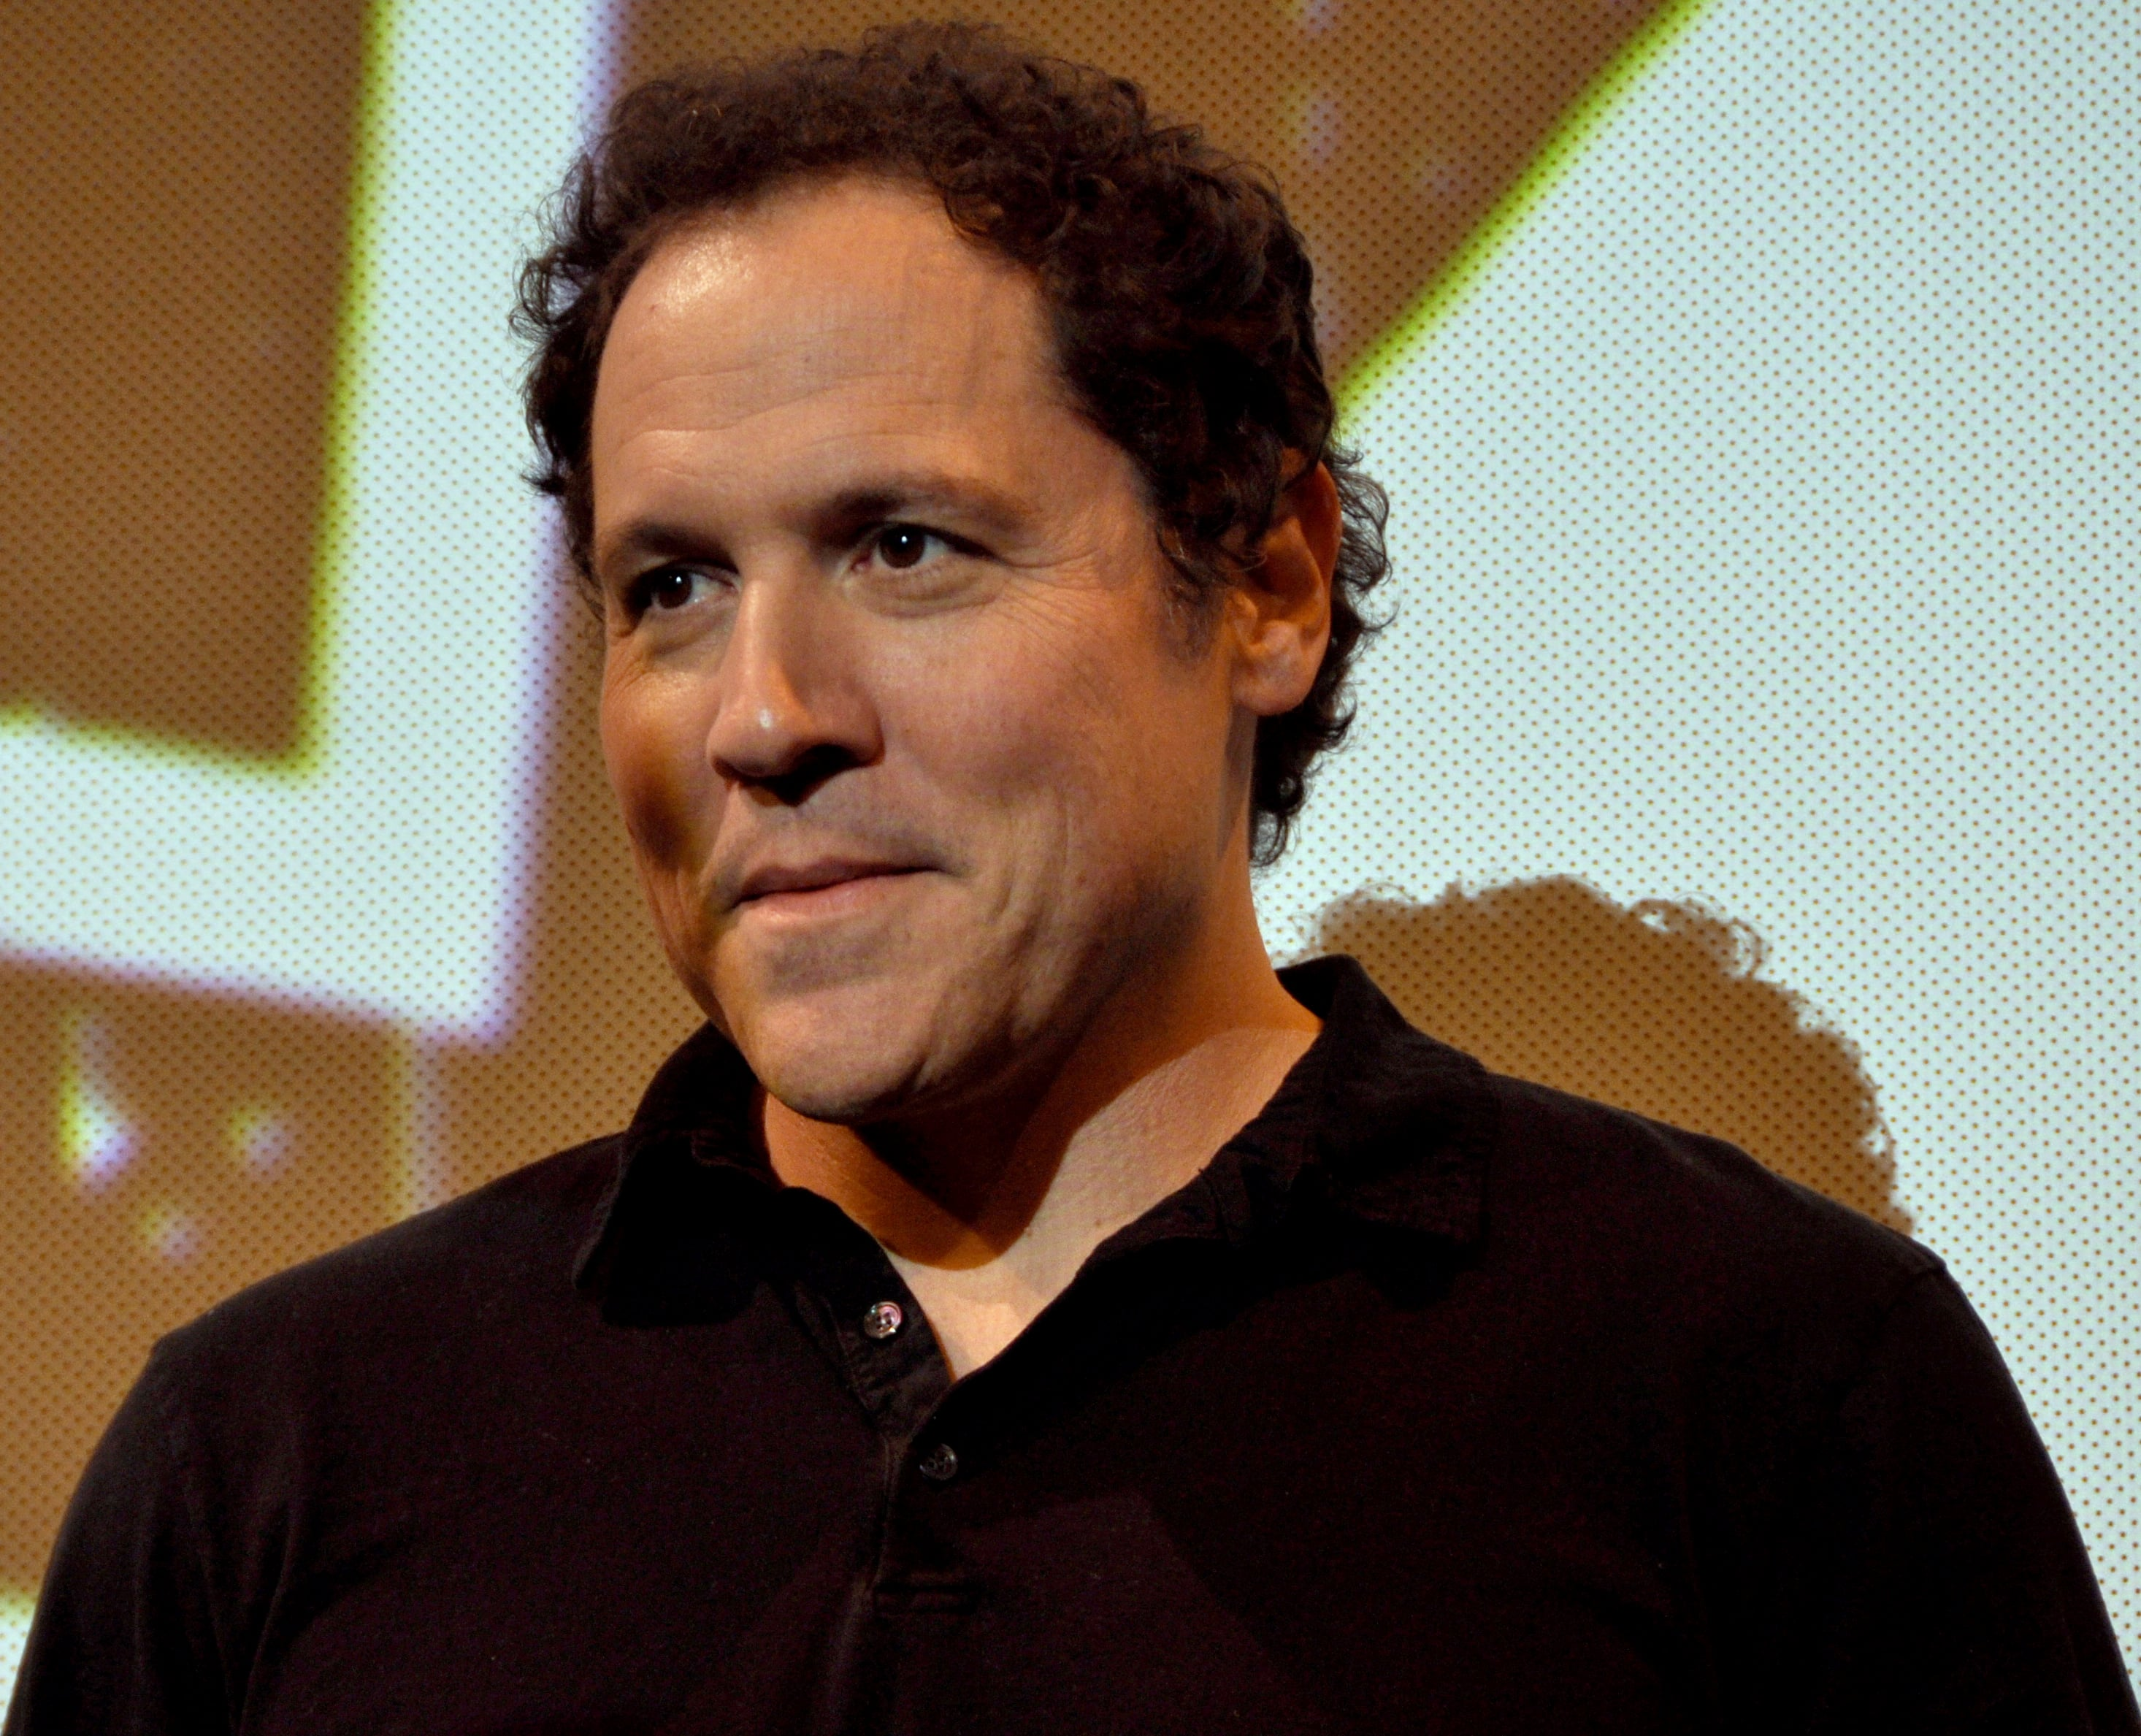 Jon Favreau HQ wallpapers